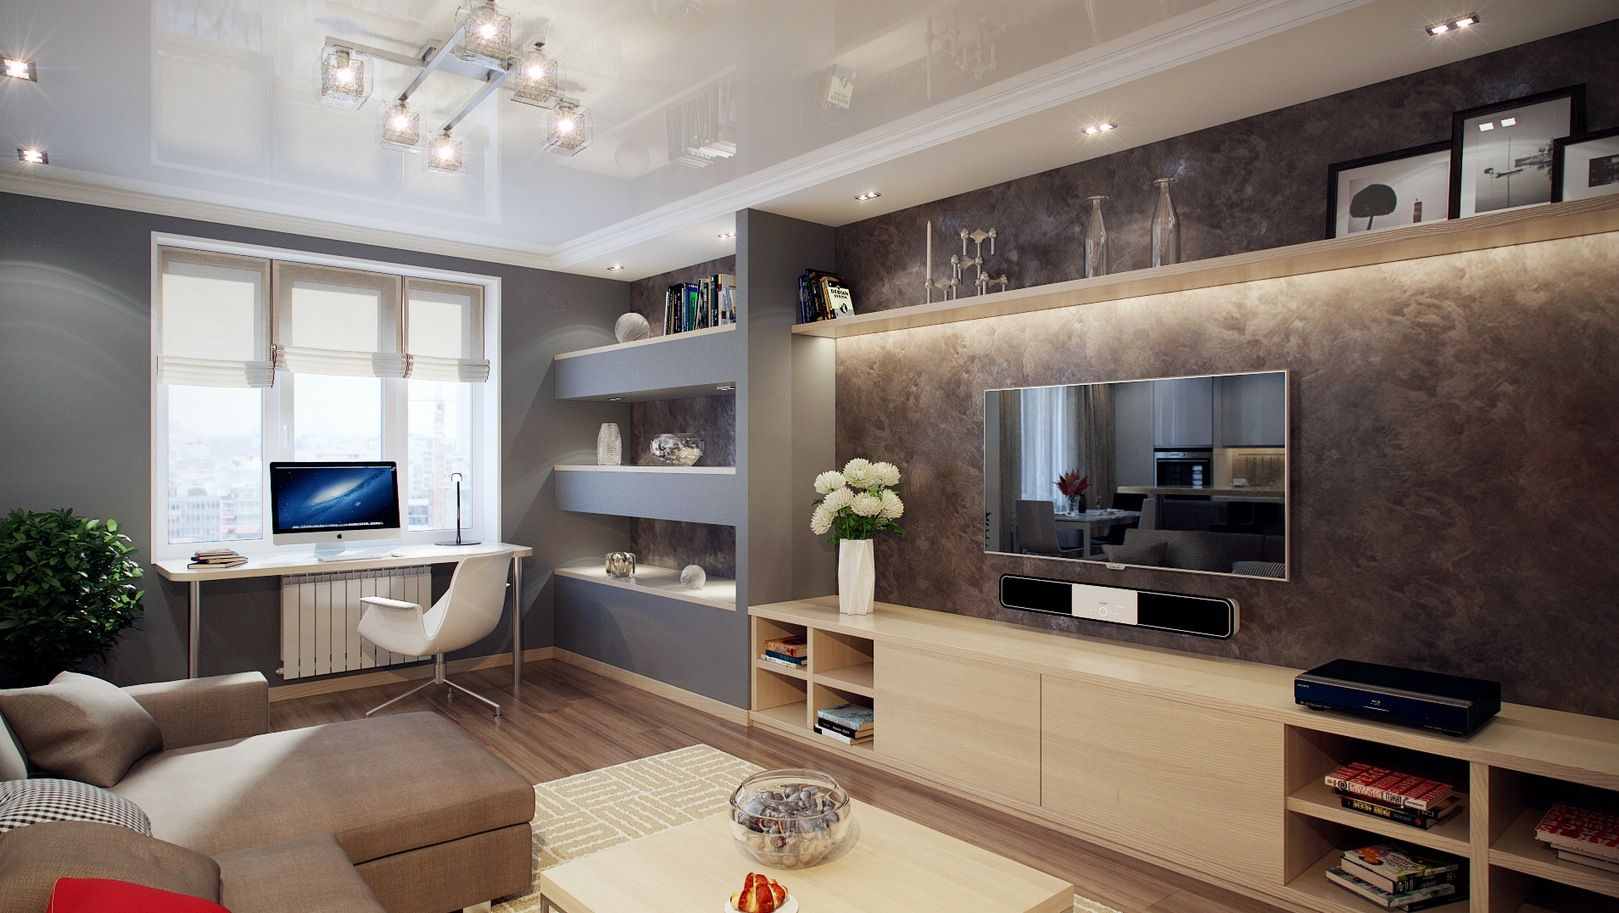 Amazing Cool Interior Design Ideas : Inspiring Cool Interior Design Ideas  With Awesome Wall Shelving And Cabinetry Modern Tv Wall Unit And A.